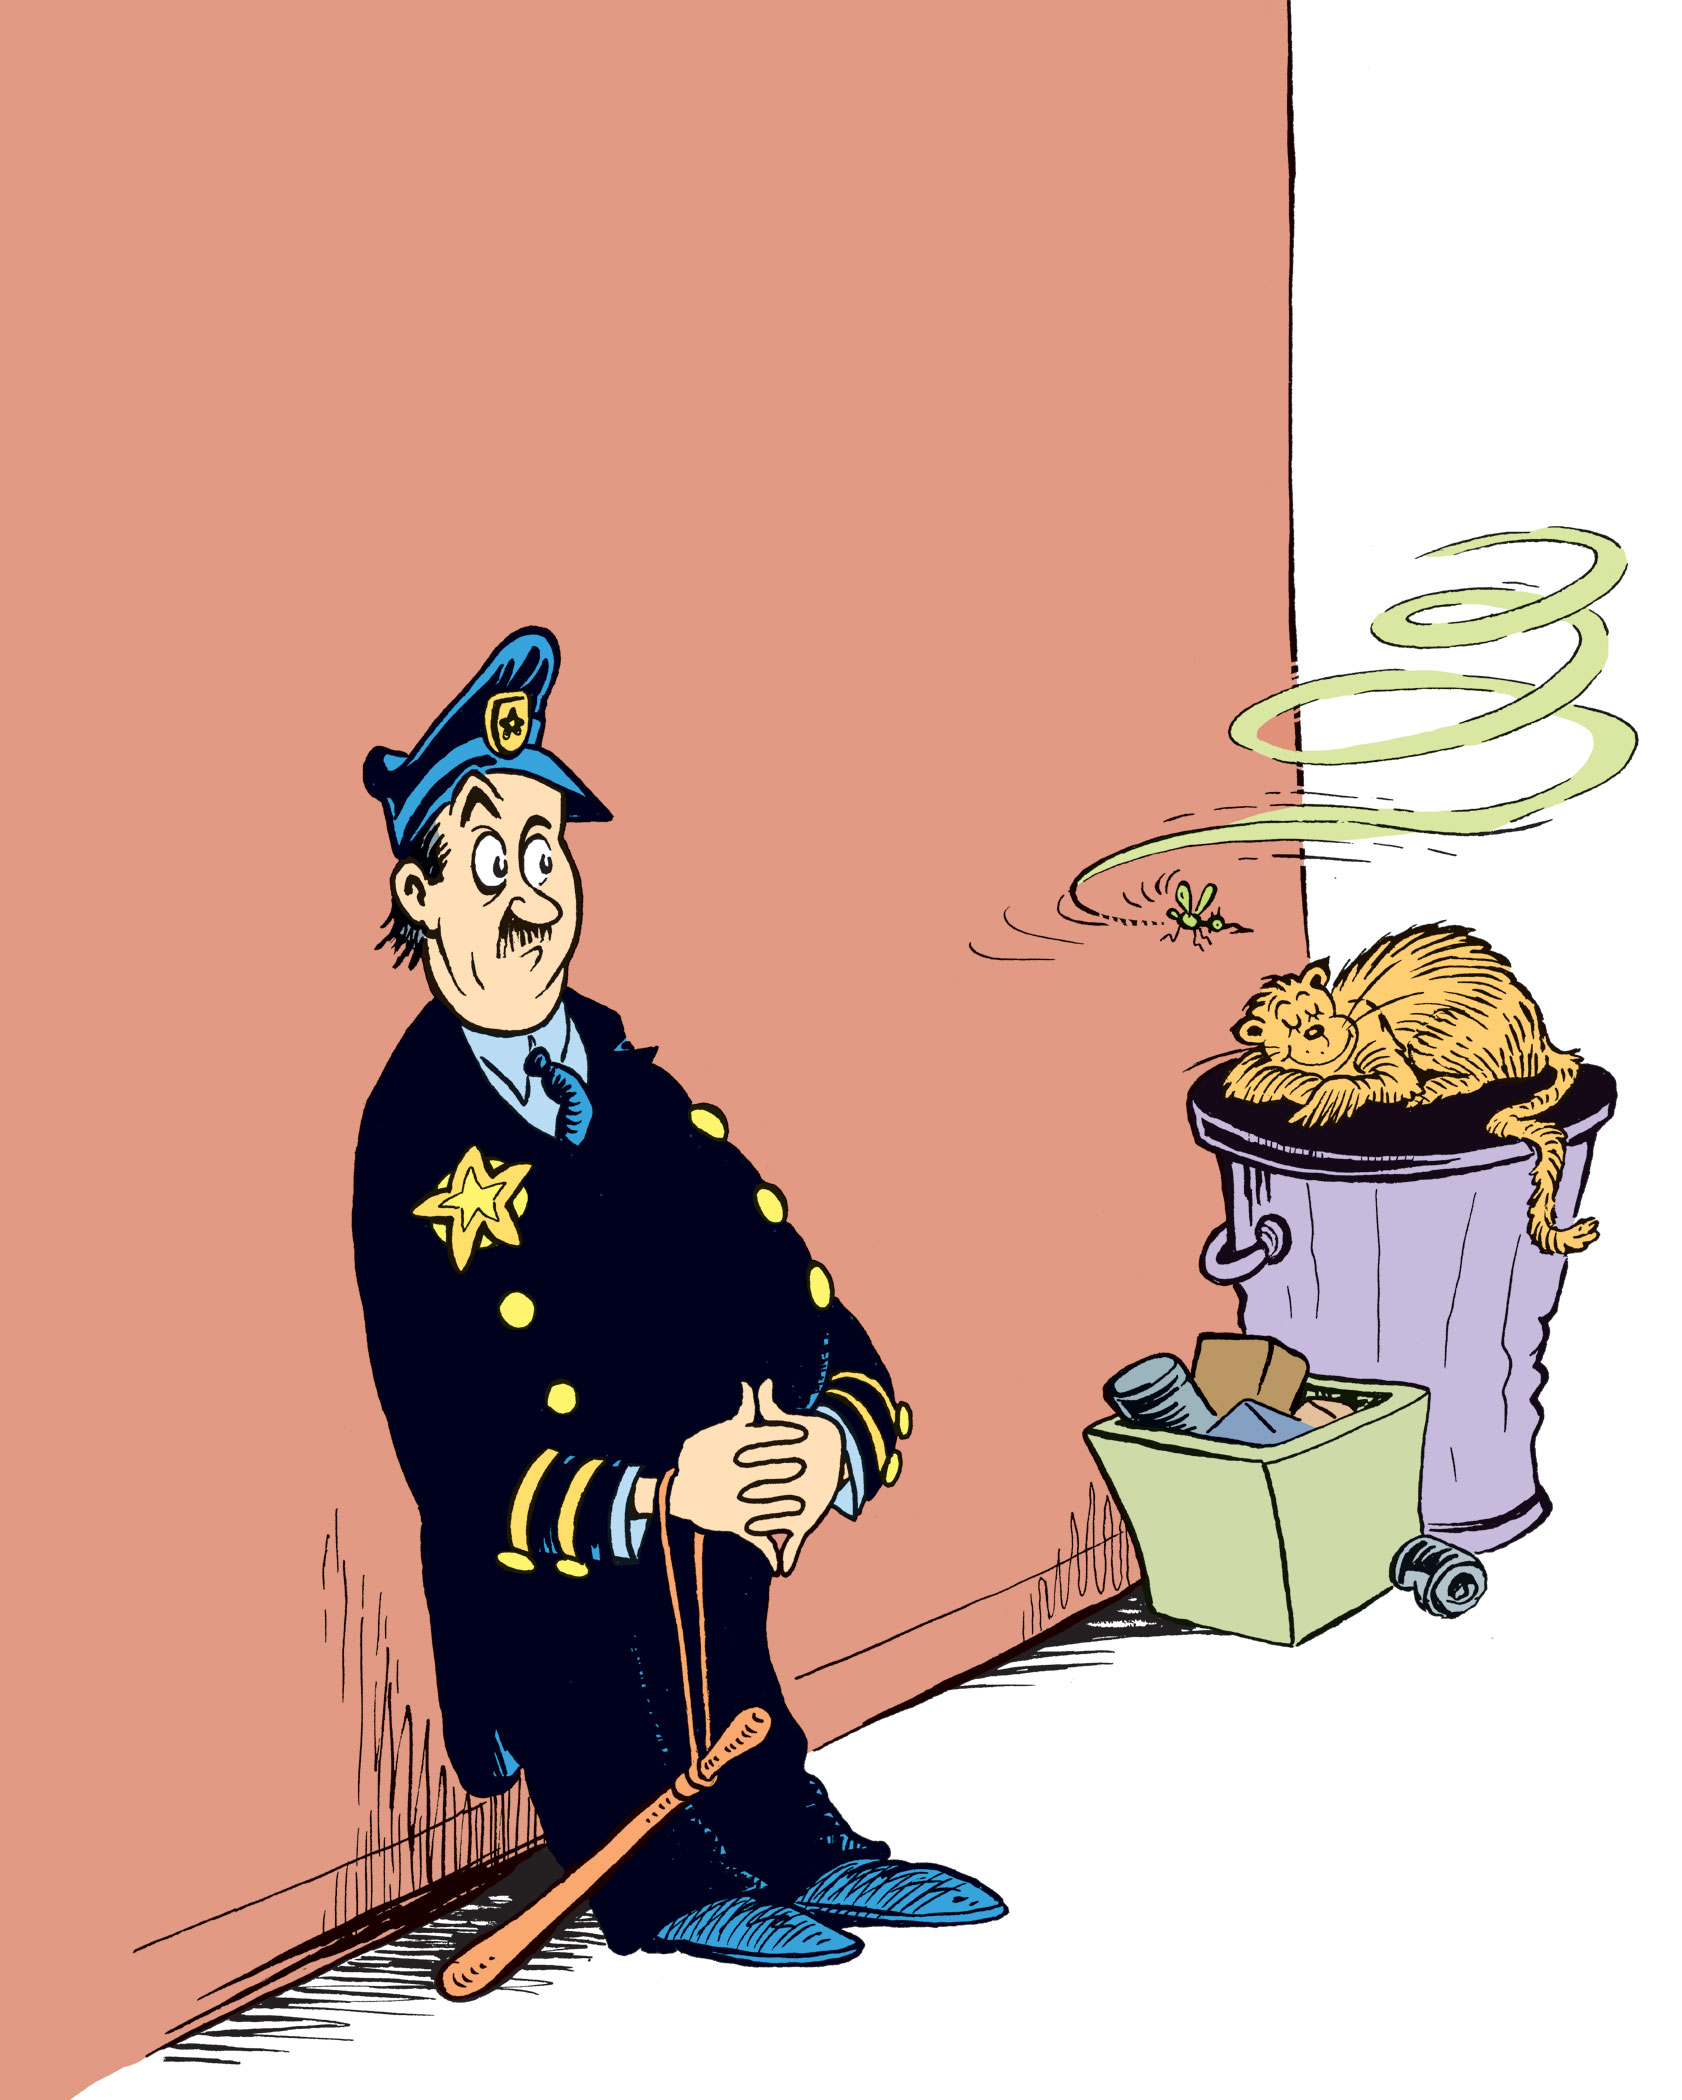 Officer Pat in an illustration from Horton and the Kwuggerbug and More Lost Stories by Dr. Seuss